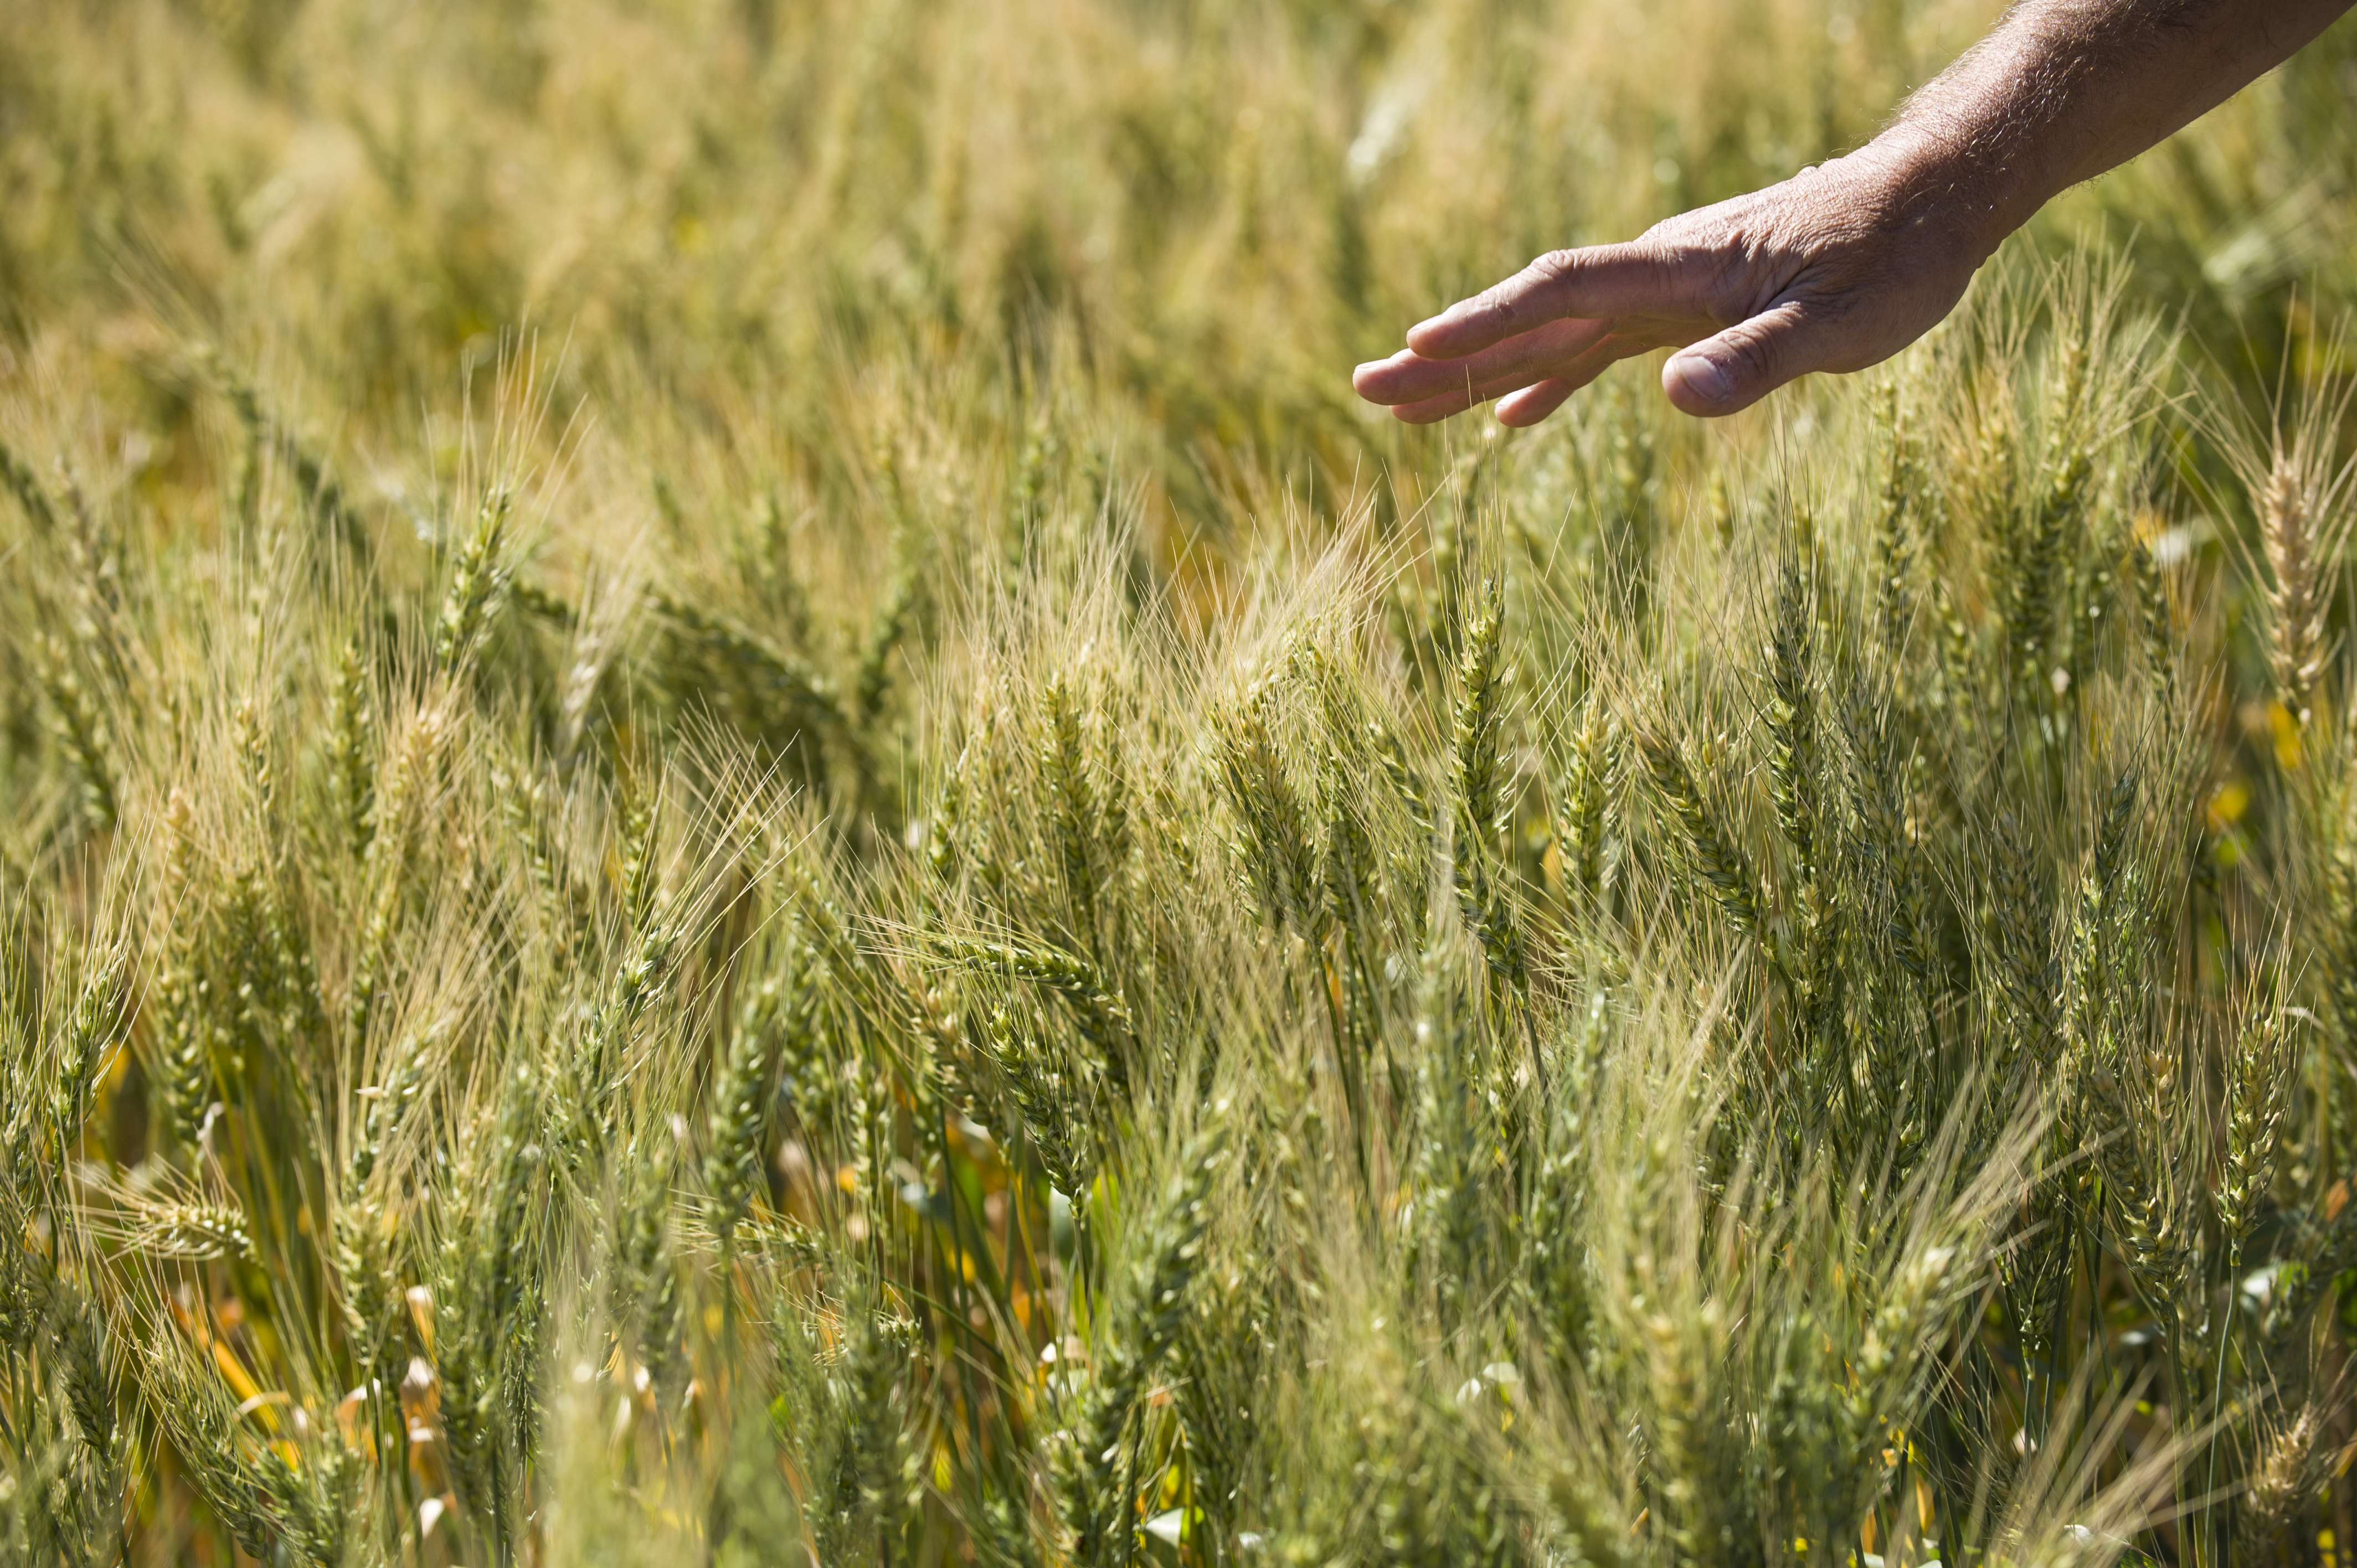 hand in wheat